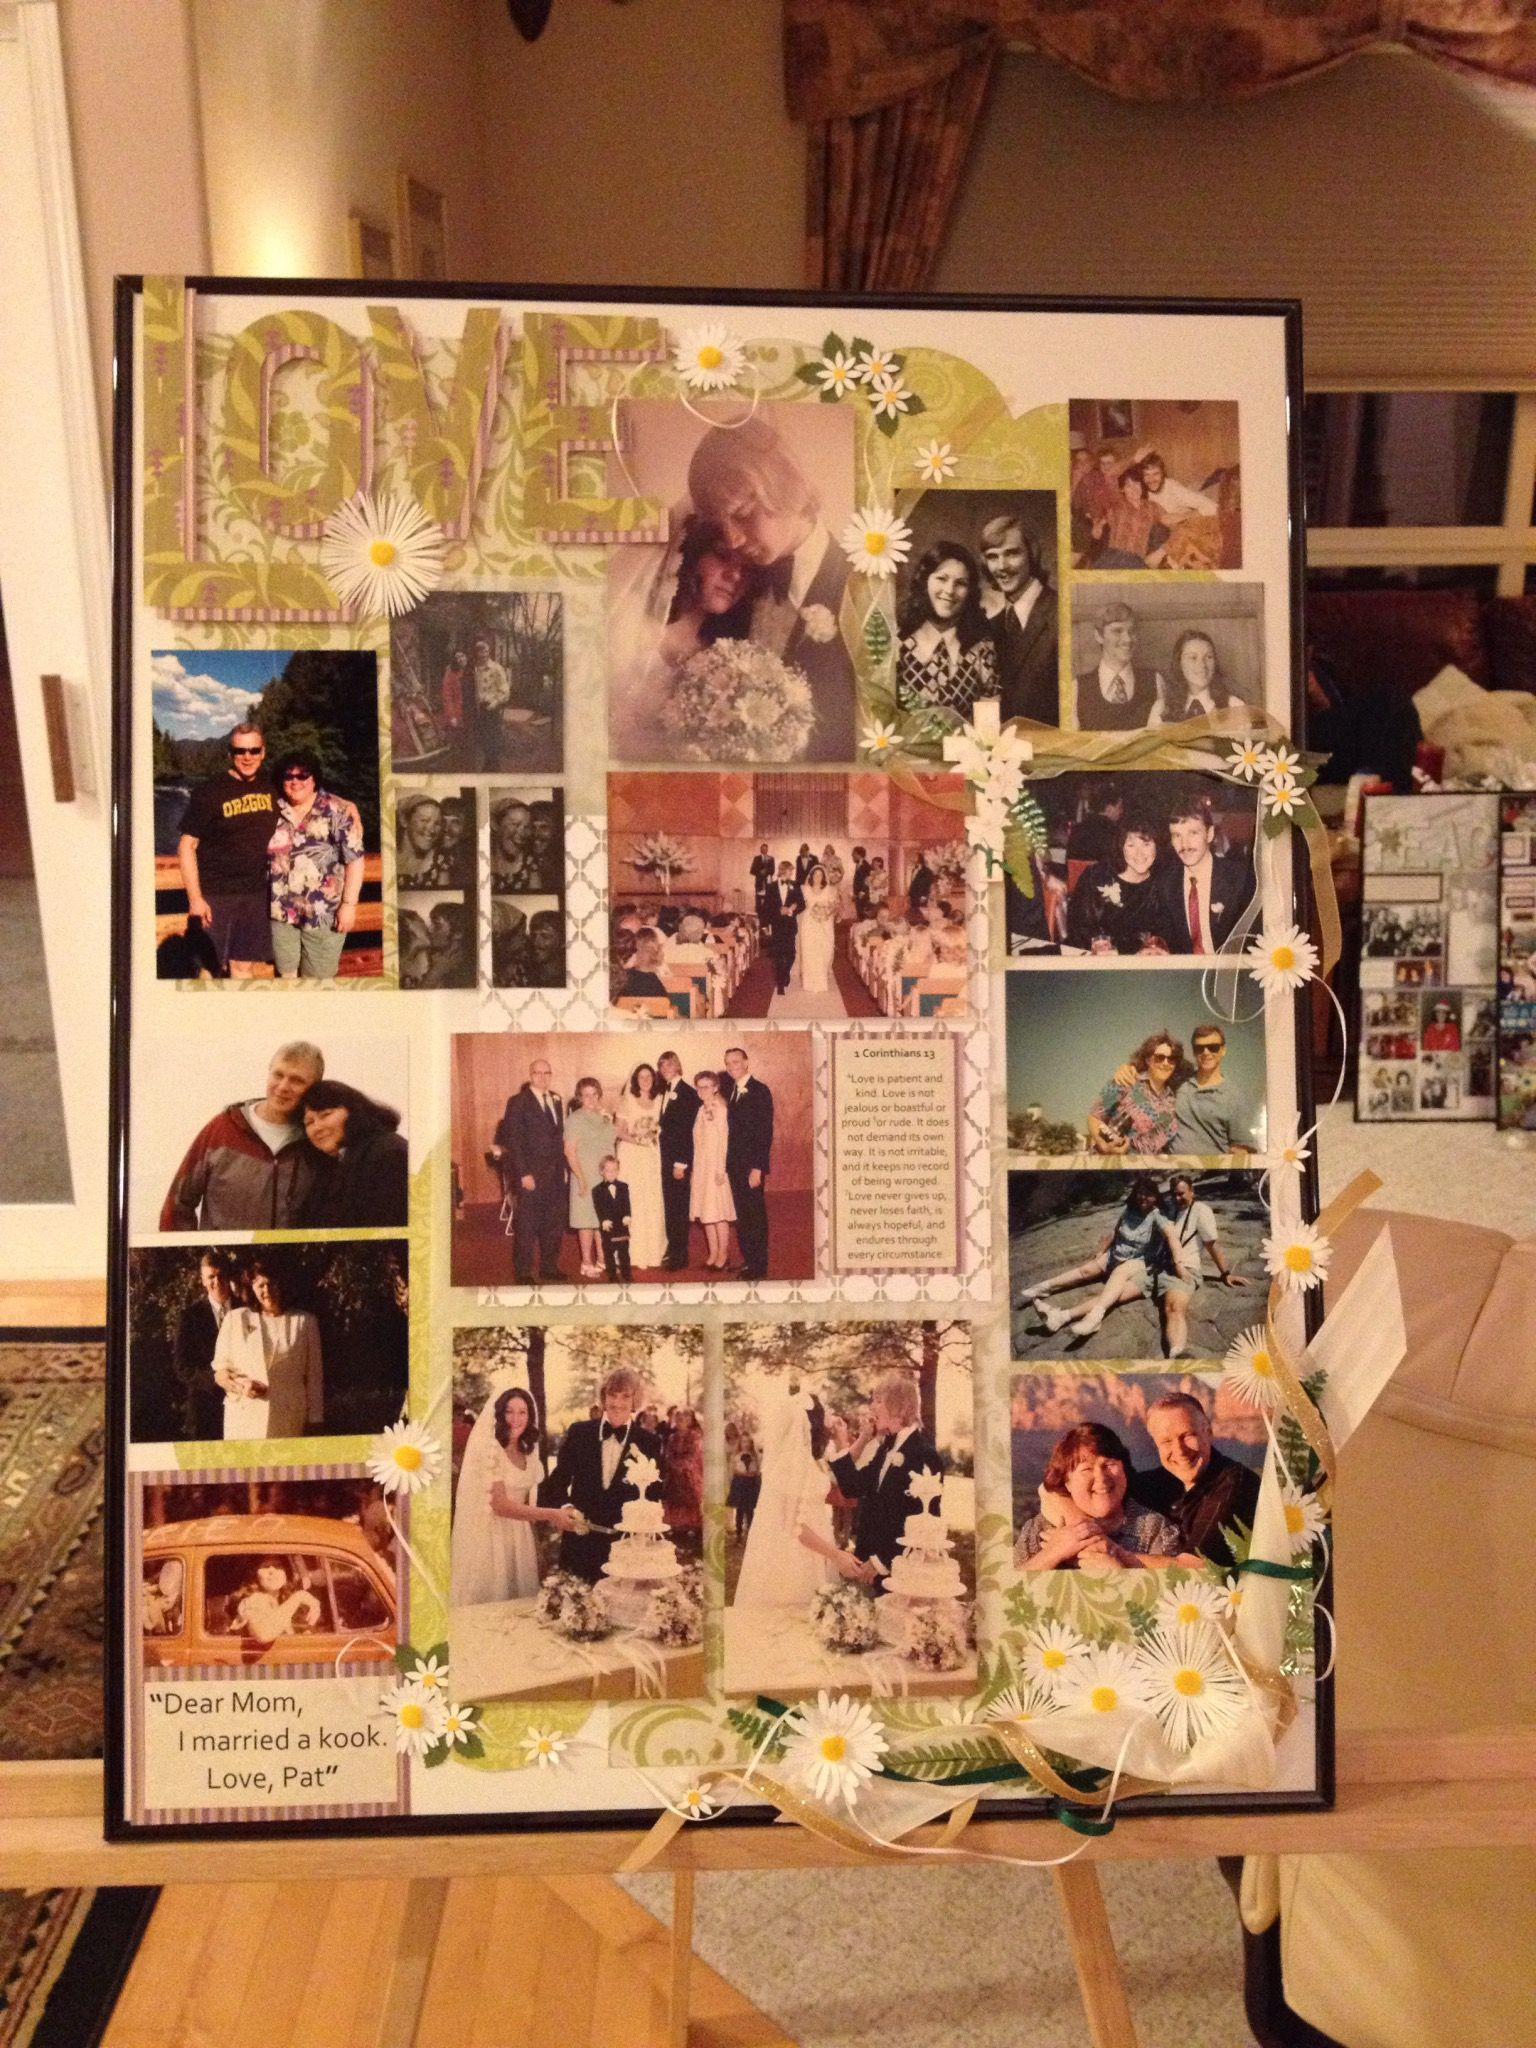 Family scrapbook ideas on pinterest - Make A Memory Board Out Of Family Photos And Scrapbooking Materials To Display